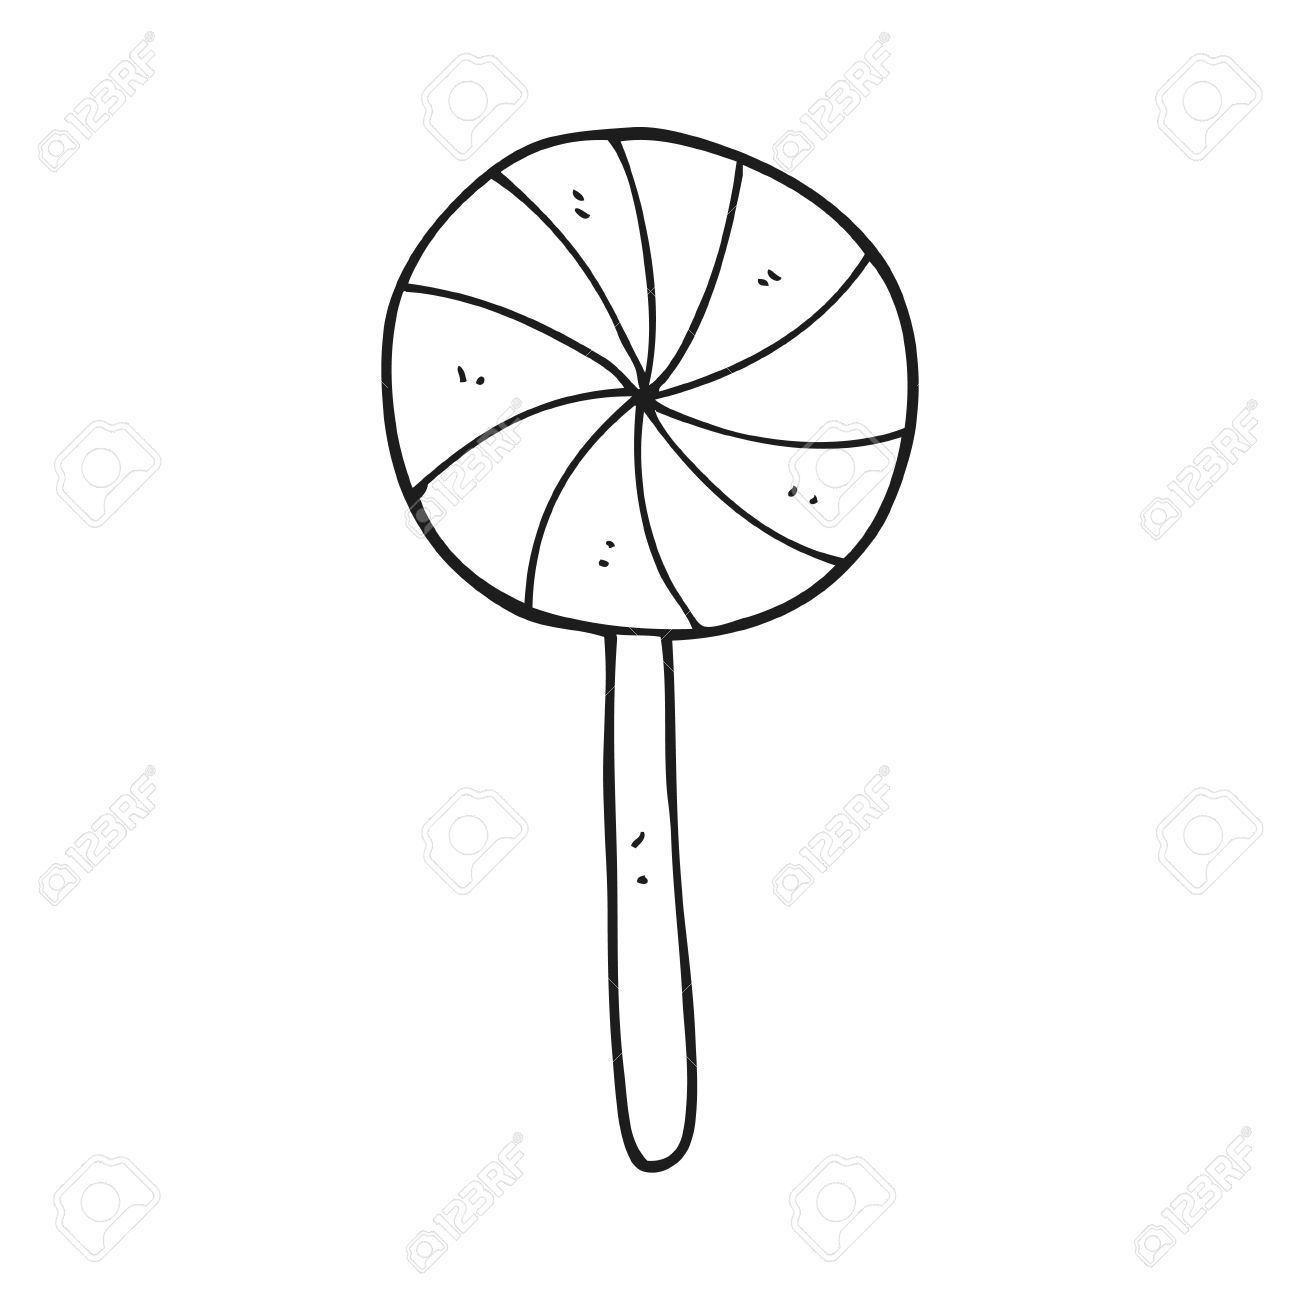 freehand drawn black and white cartoon candy lollipop royalty free